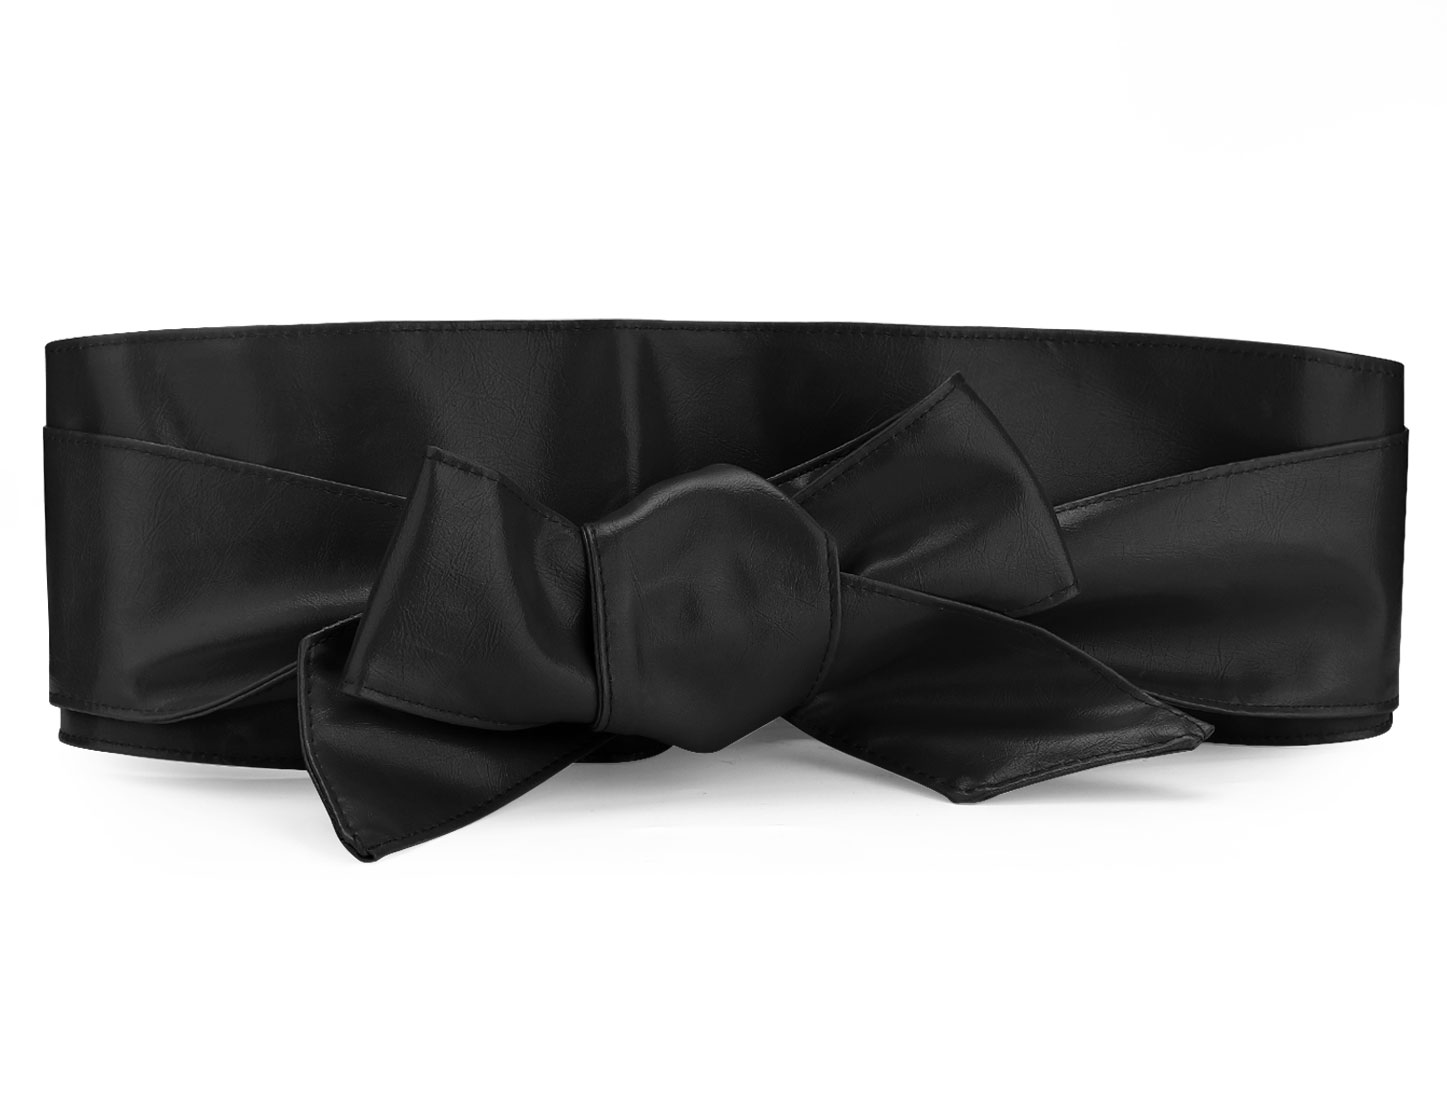 Ladies Black Faux Leather Self Tie Bowknot Wide Waist Band Sash Obi Belt